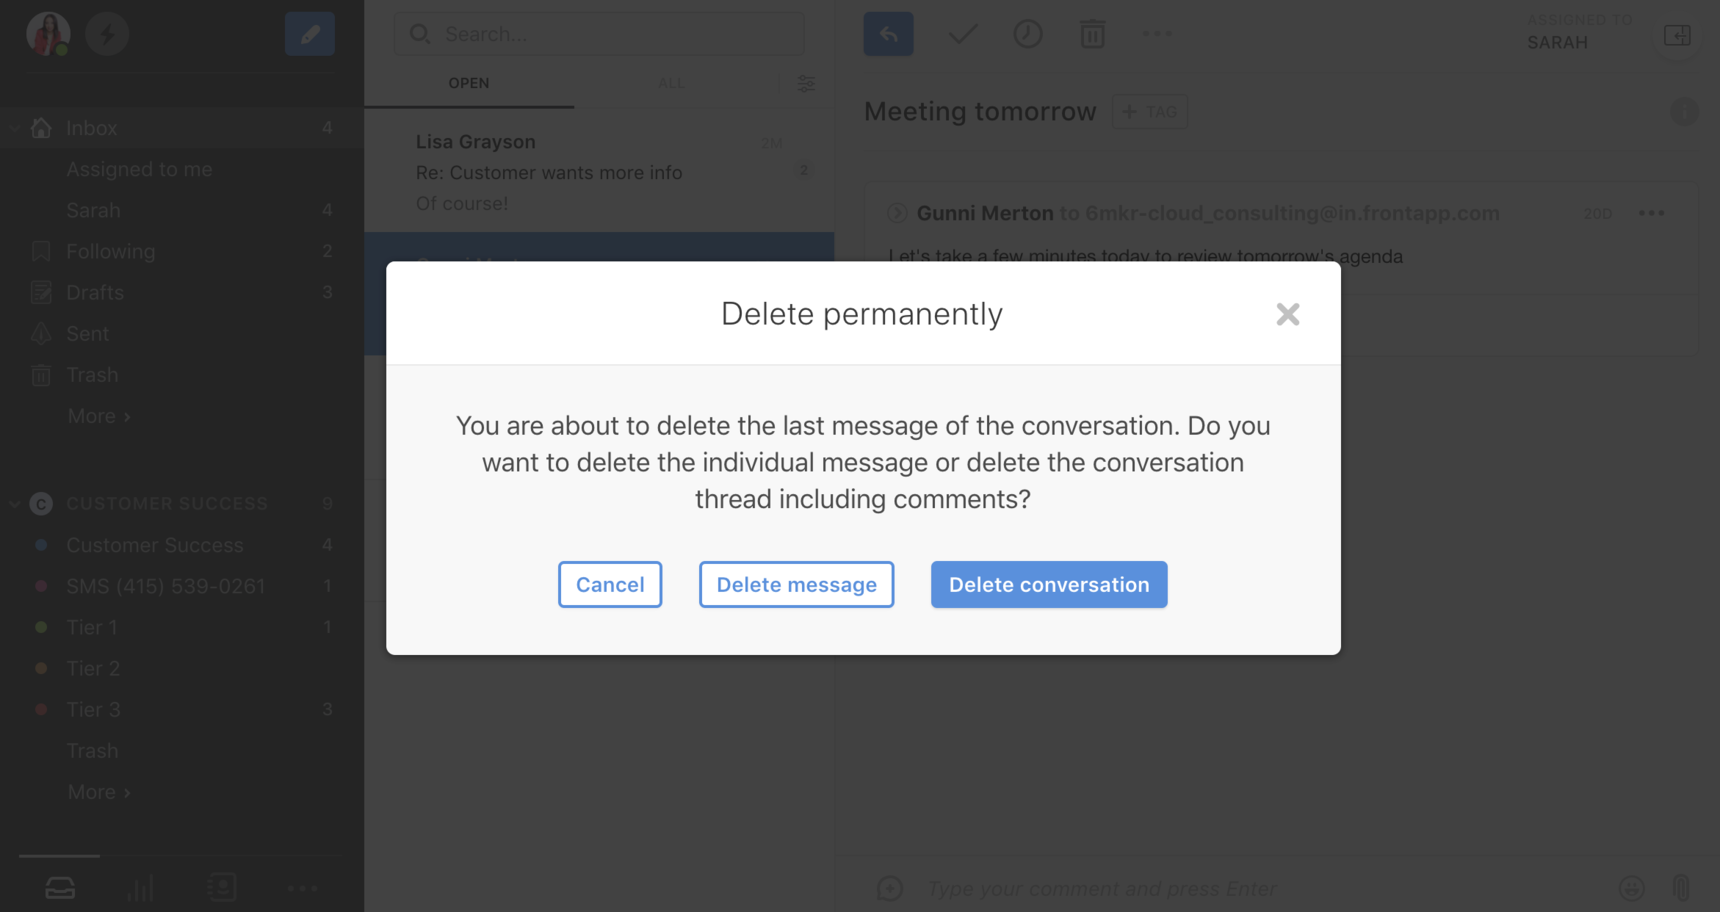 How to permanently delete a message or conversation in Front